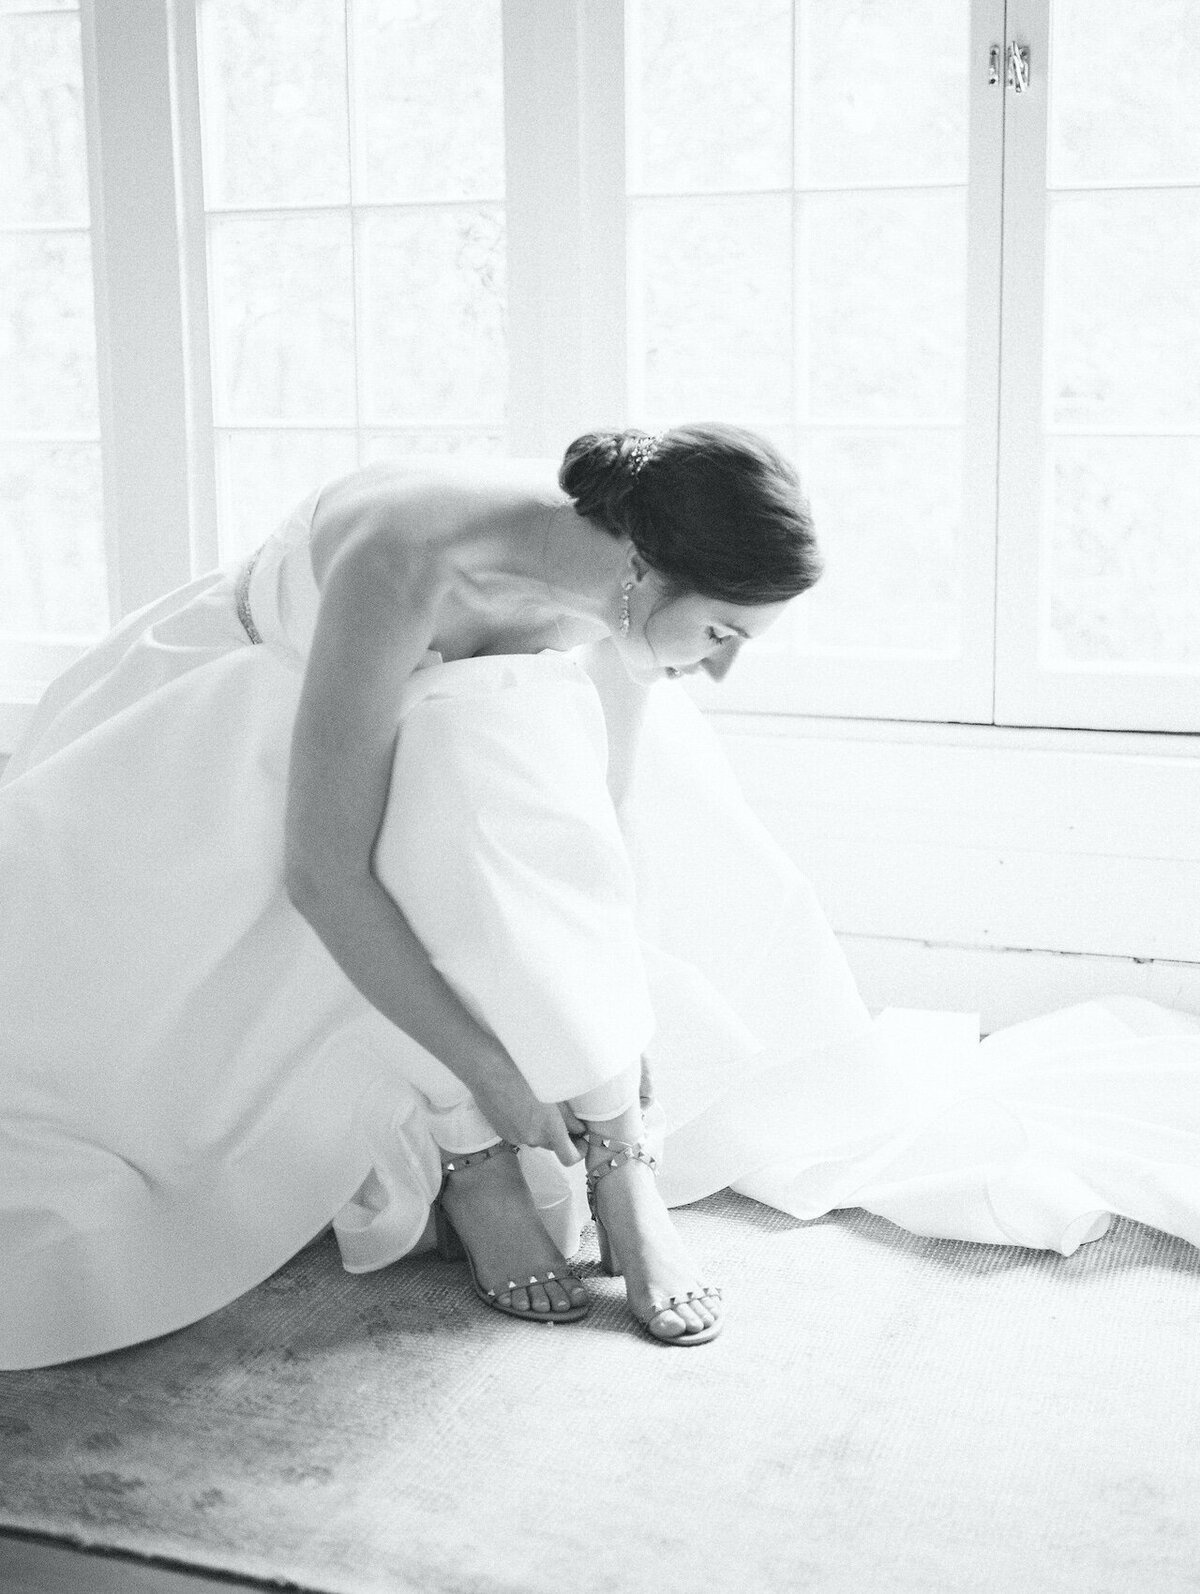 Bride Getting Ready Photos Washington DC Film Photographer Robert Aveau for © Bonnie Sen Photography